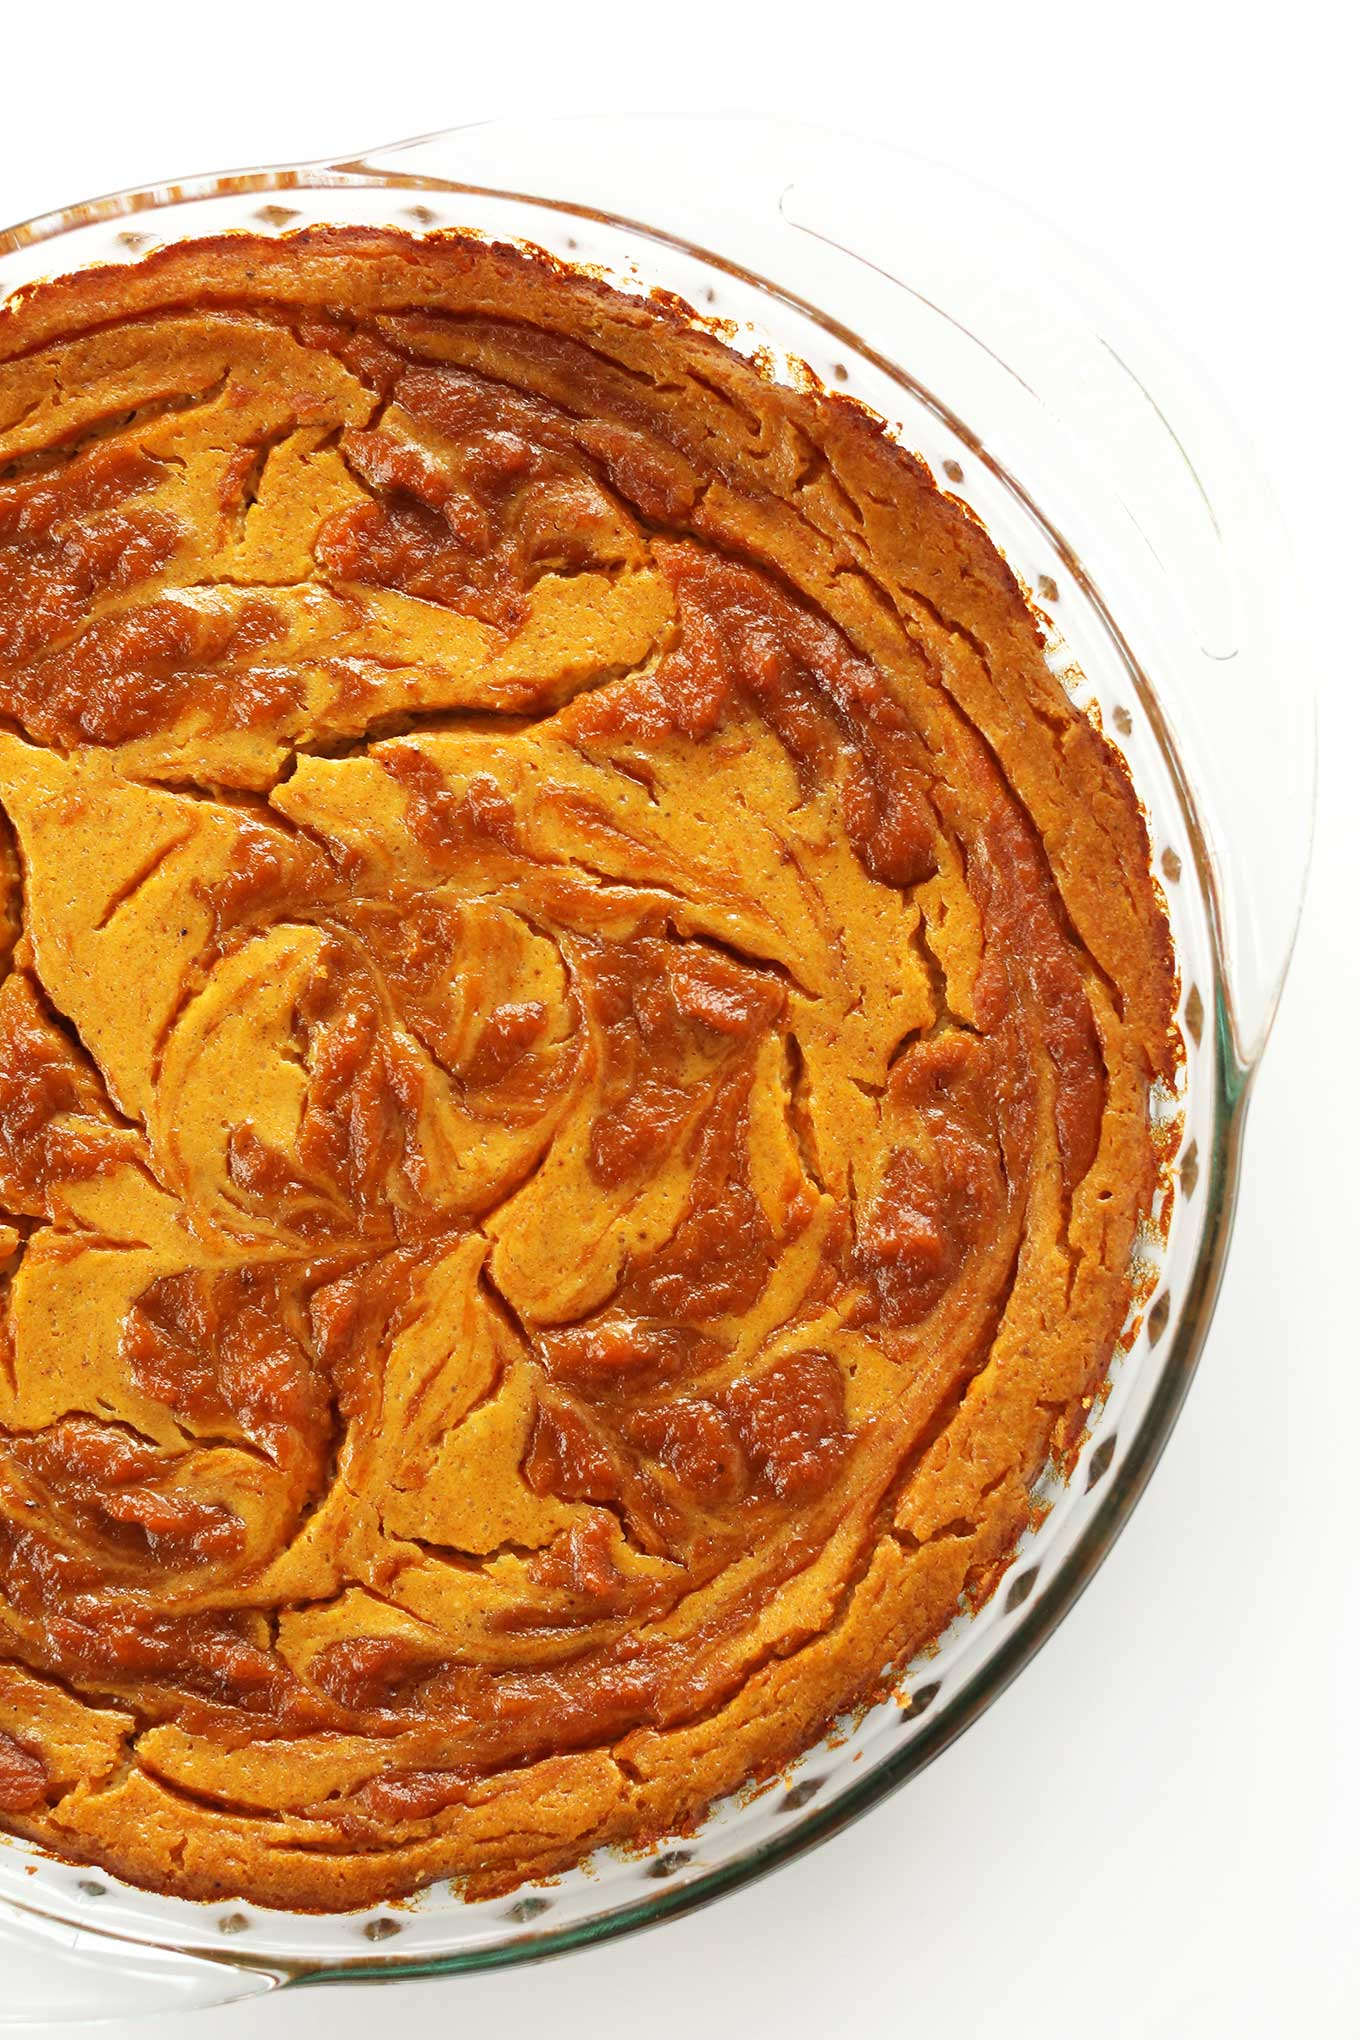 Freshly baked Vegan Pumpkin Swirl Cheesecake in a pie pan